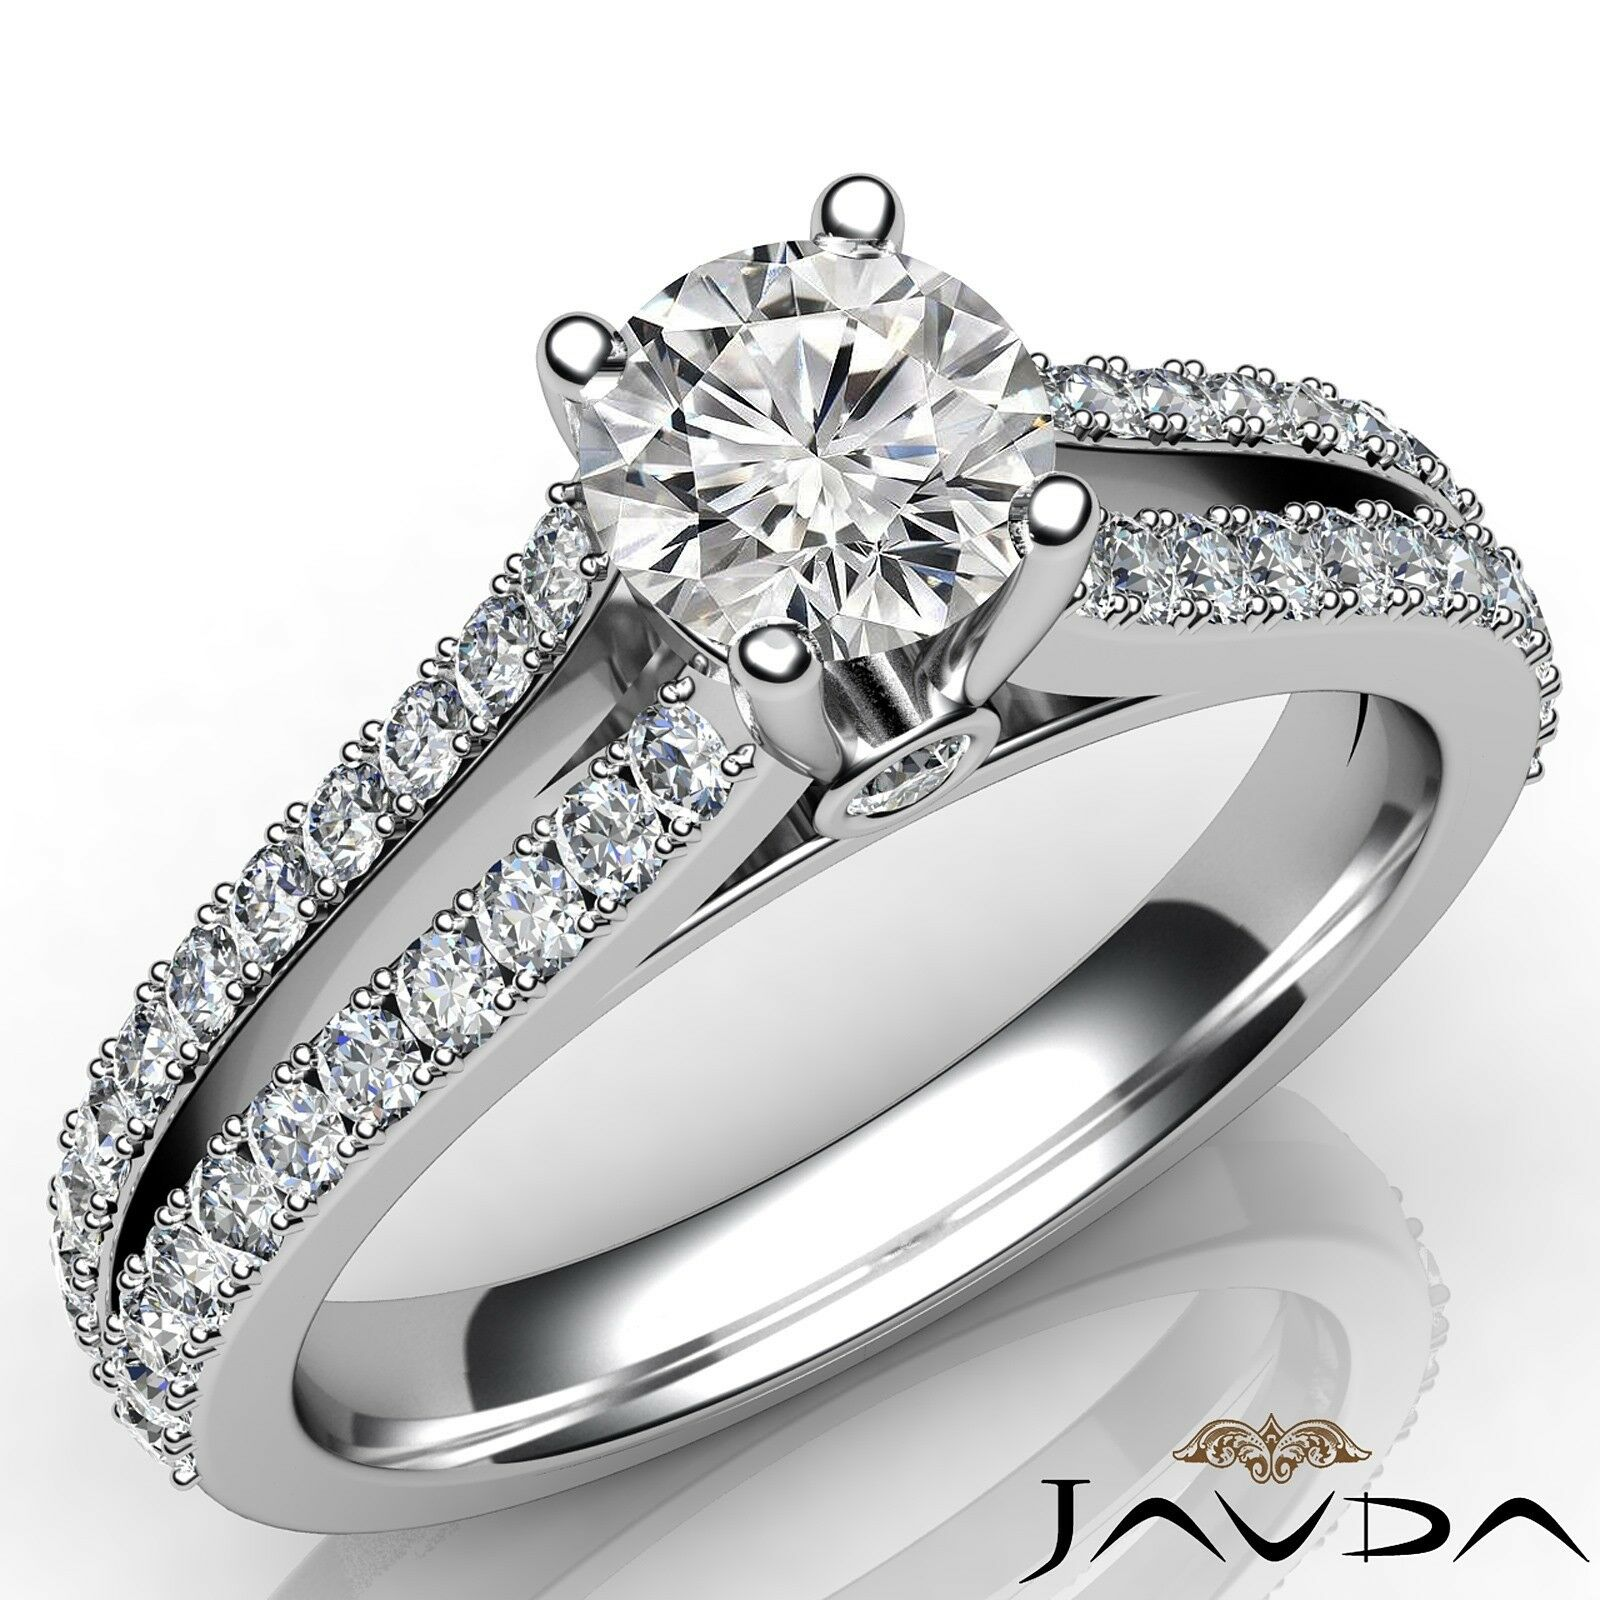 1.25ctw Classic 4 Prong Round Diamond Engagement Ring GIA D-SI2 White Gold Rings